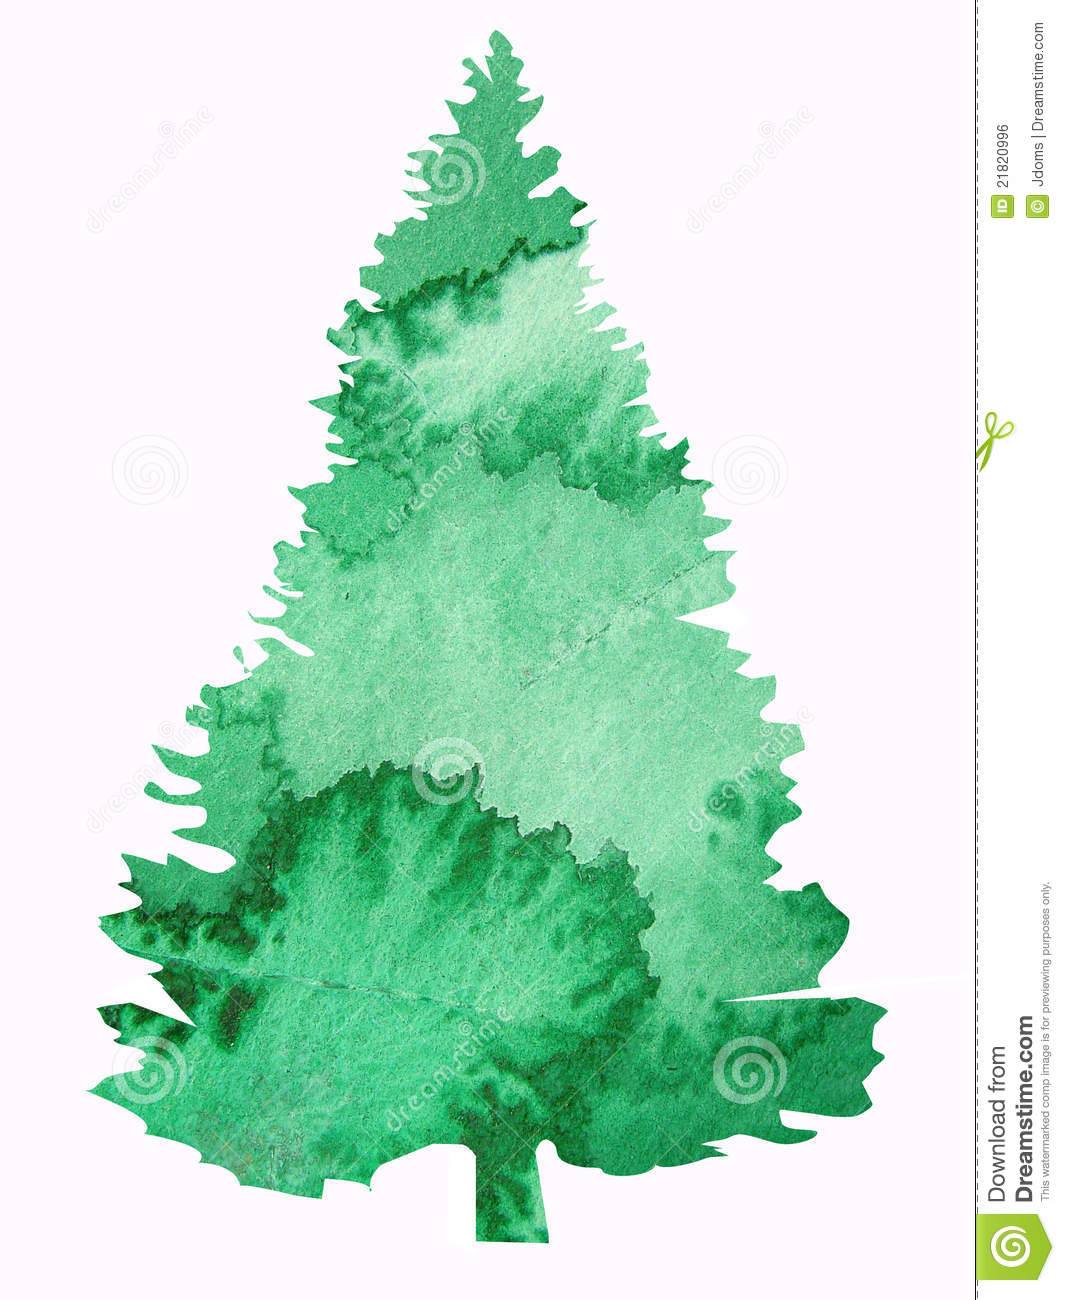 Watercolor Tree Design Royalty Free Stock Image - Image: 21820996